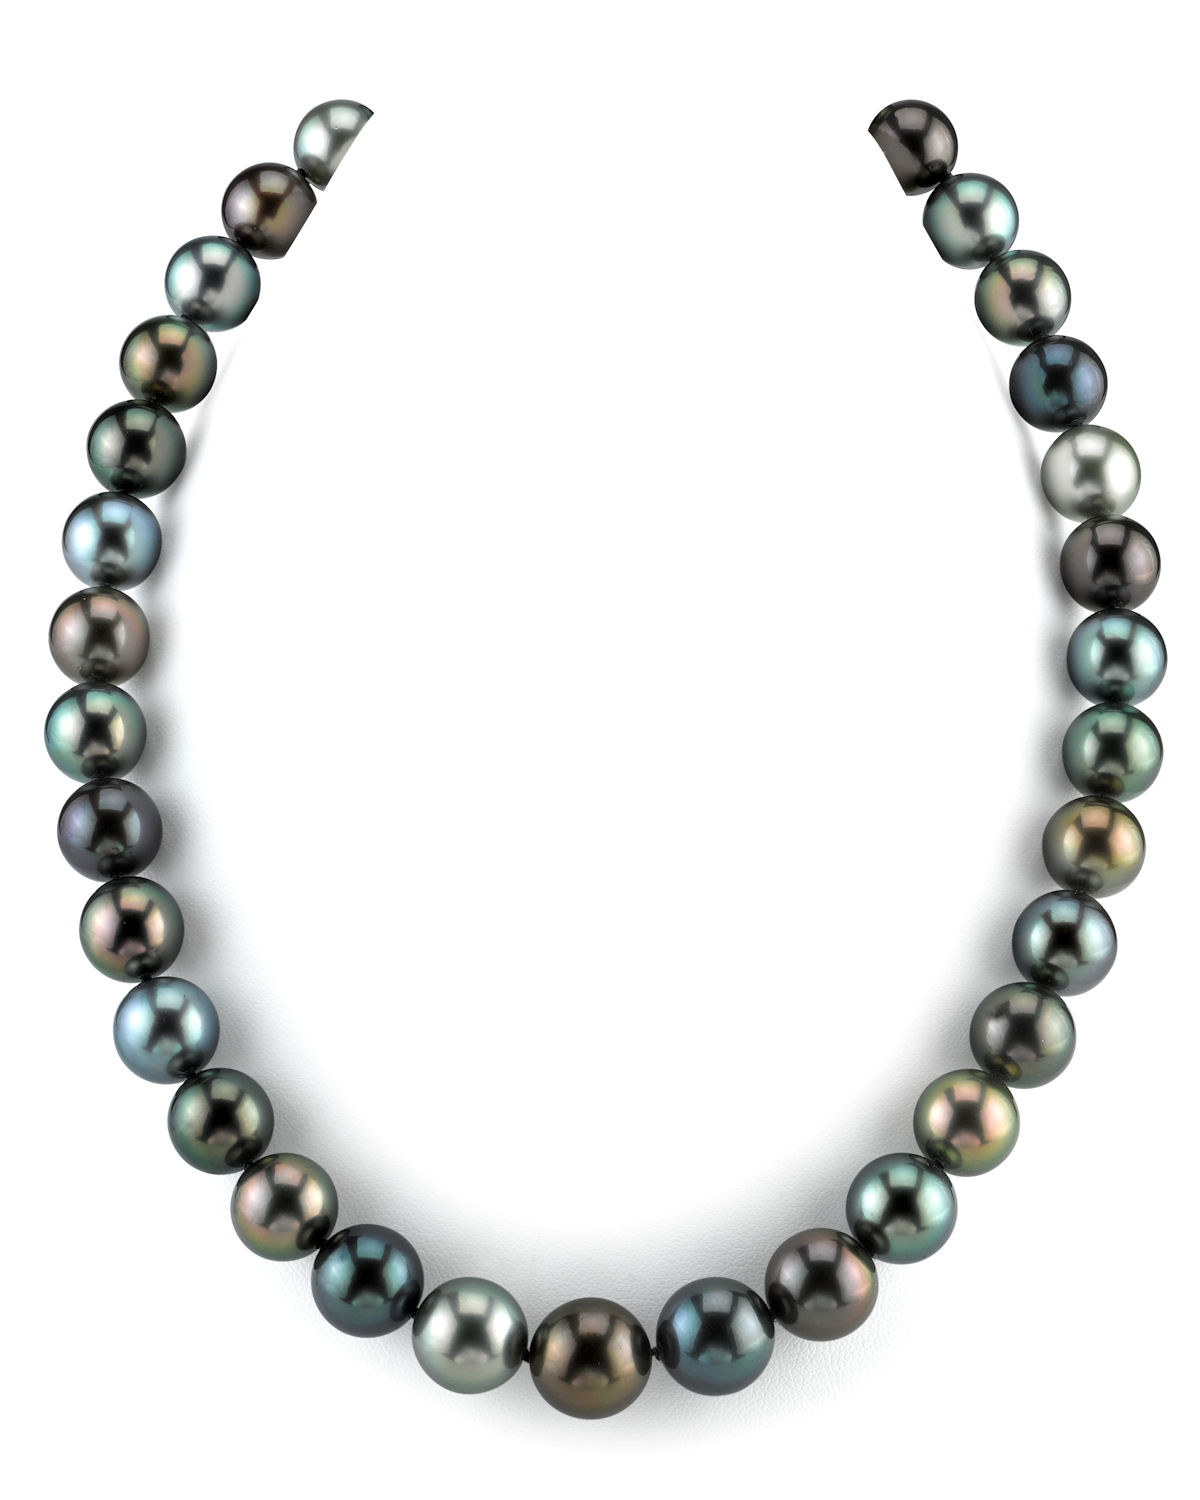 11-13mm Tahitian South Sea Pearl Multicolor Necklace - AAAA Quality